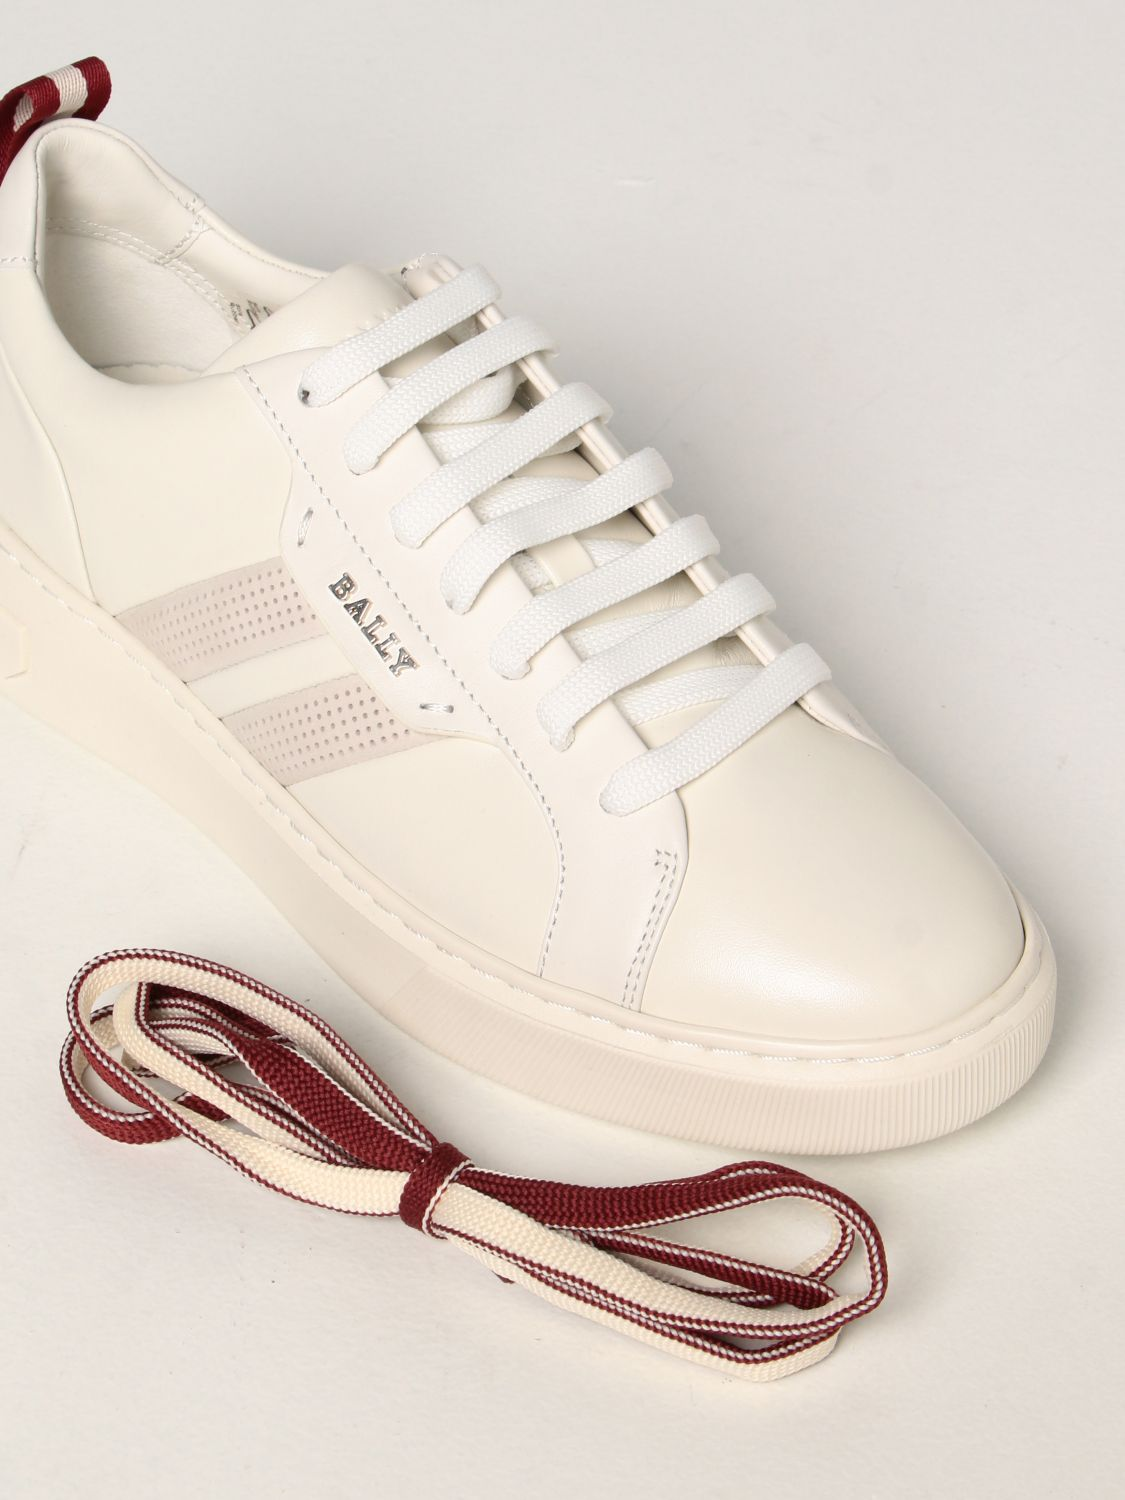 Sneakers Bally: Maxim Bally sneakers in leather white 4